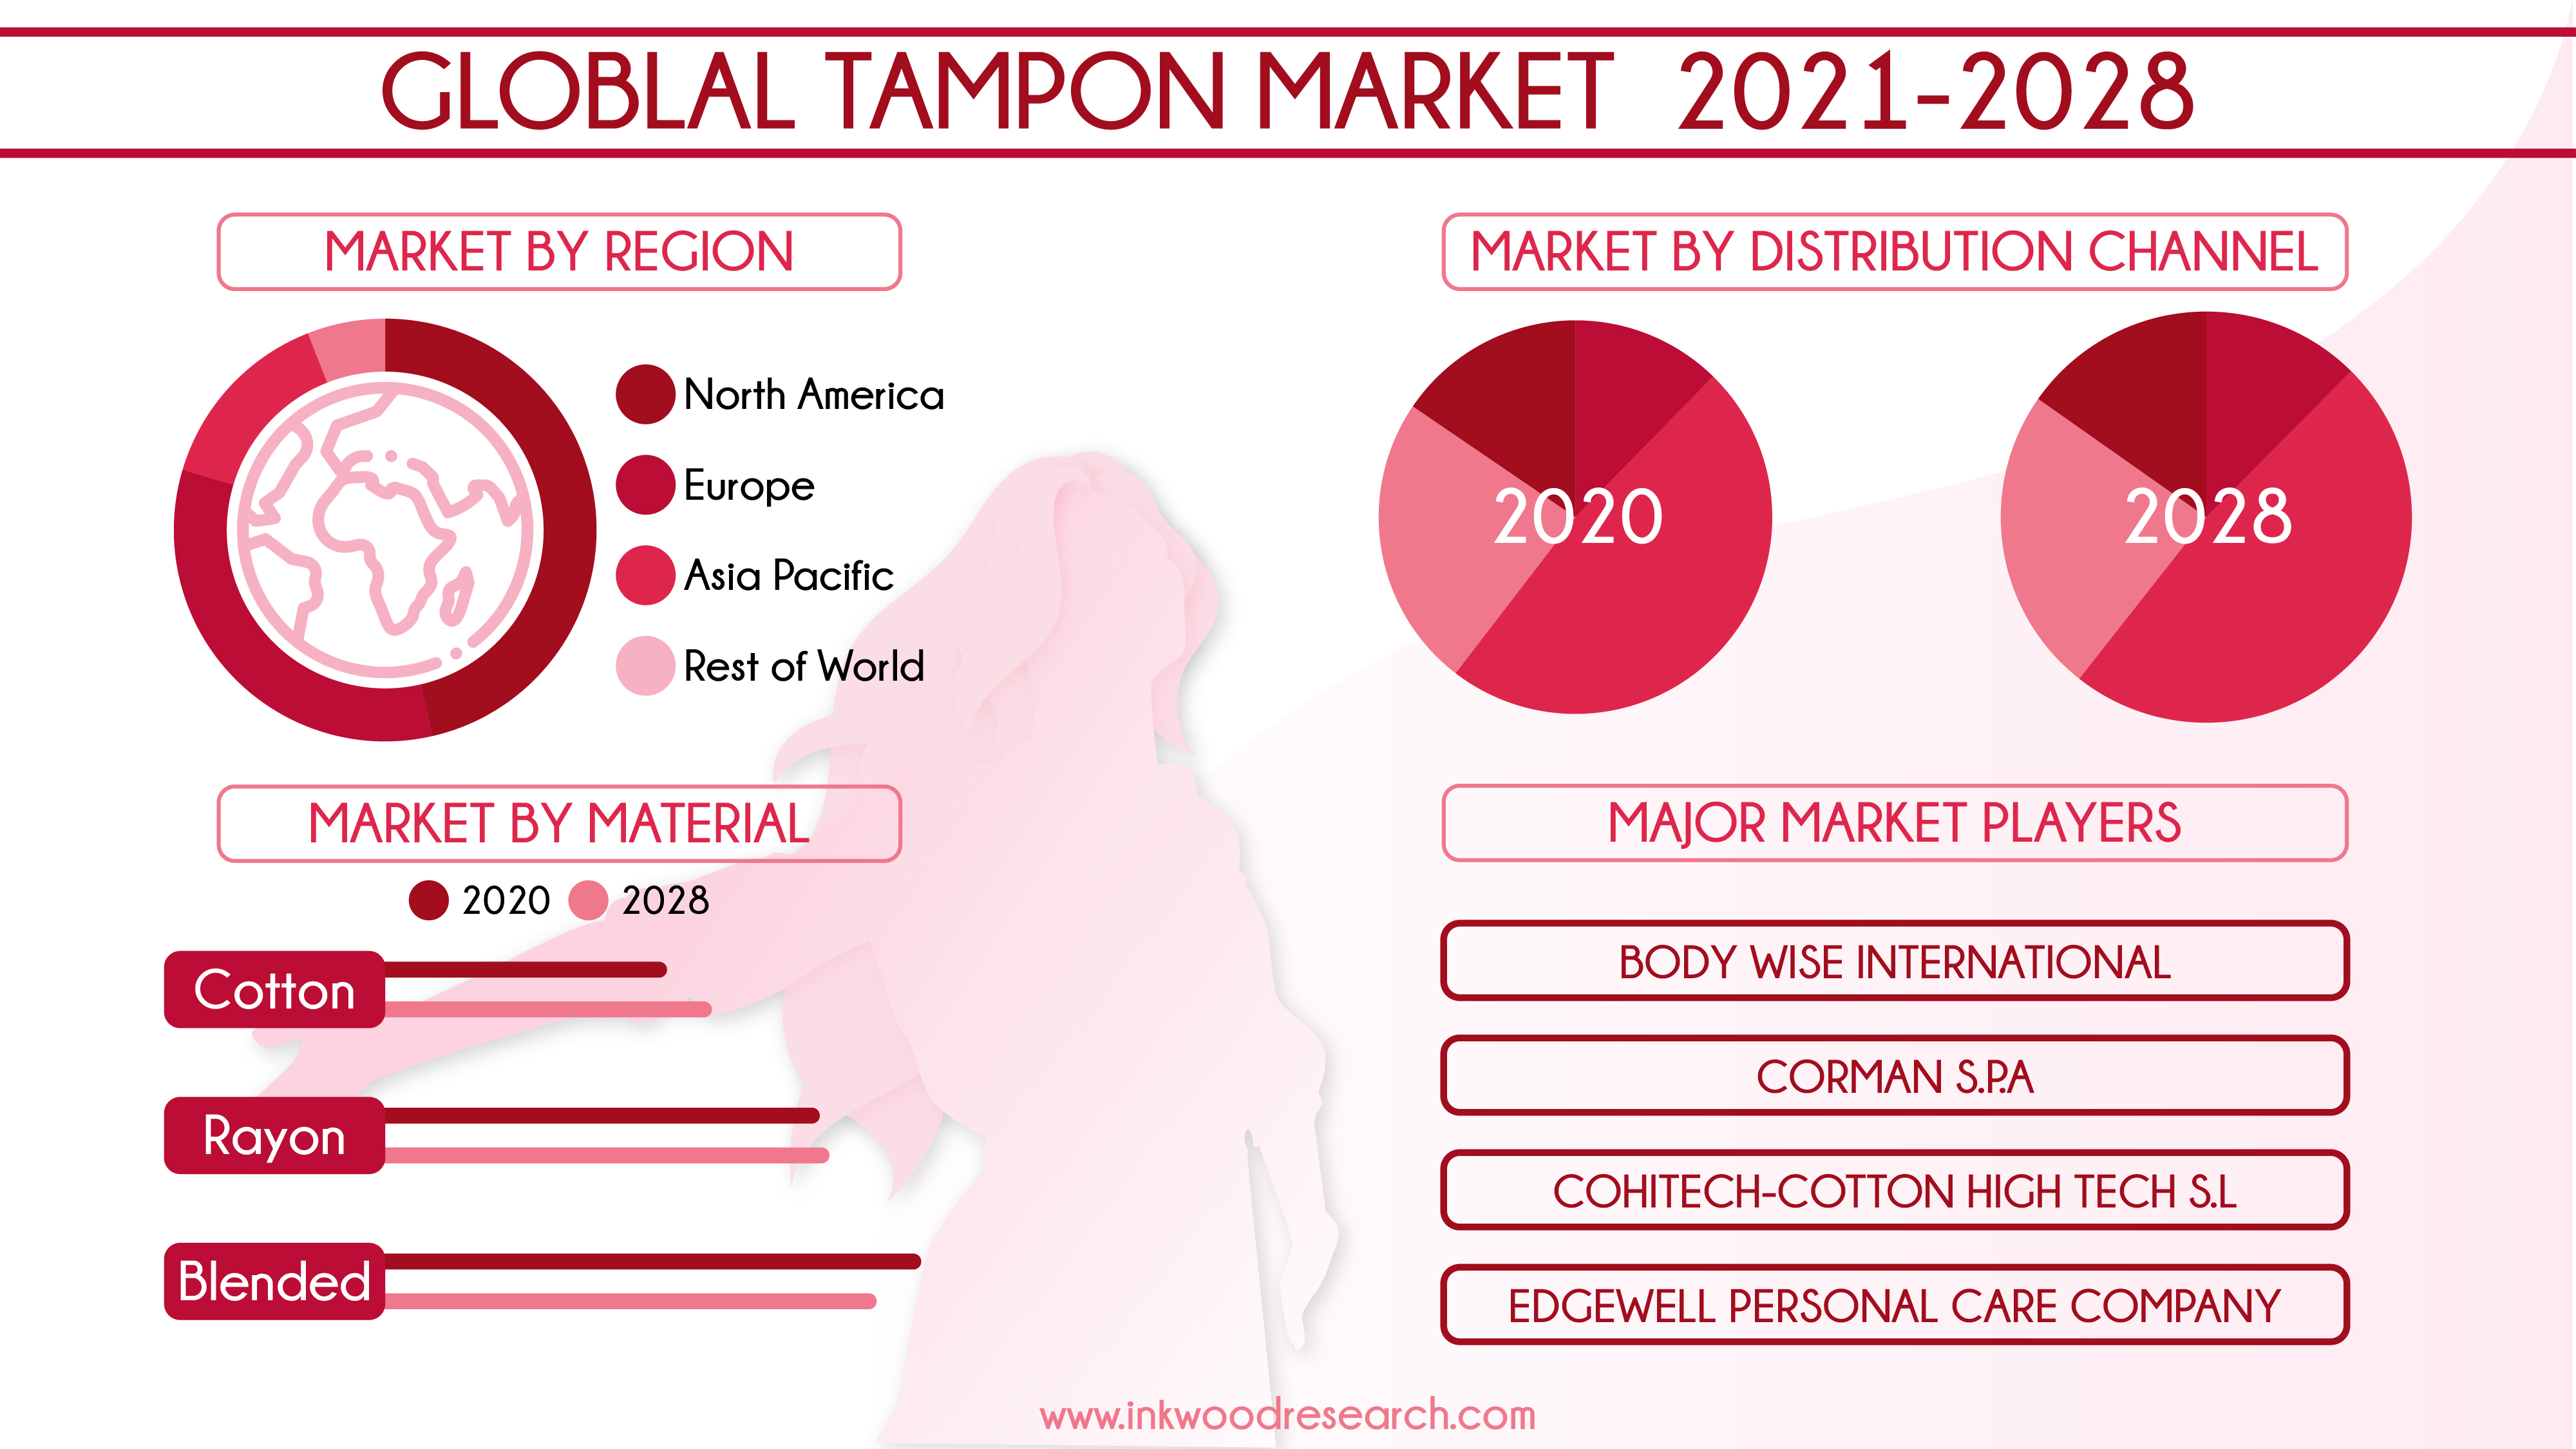 Global Tampon Market to bolster with Untapped Opportunities in Developing Countries